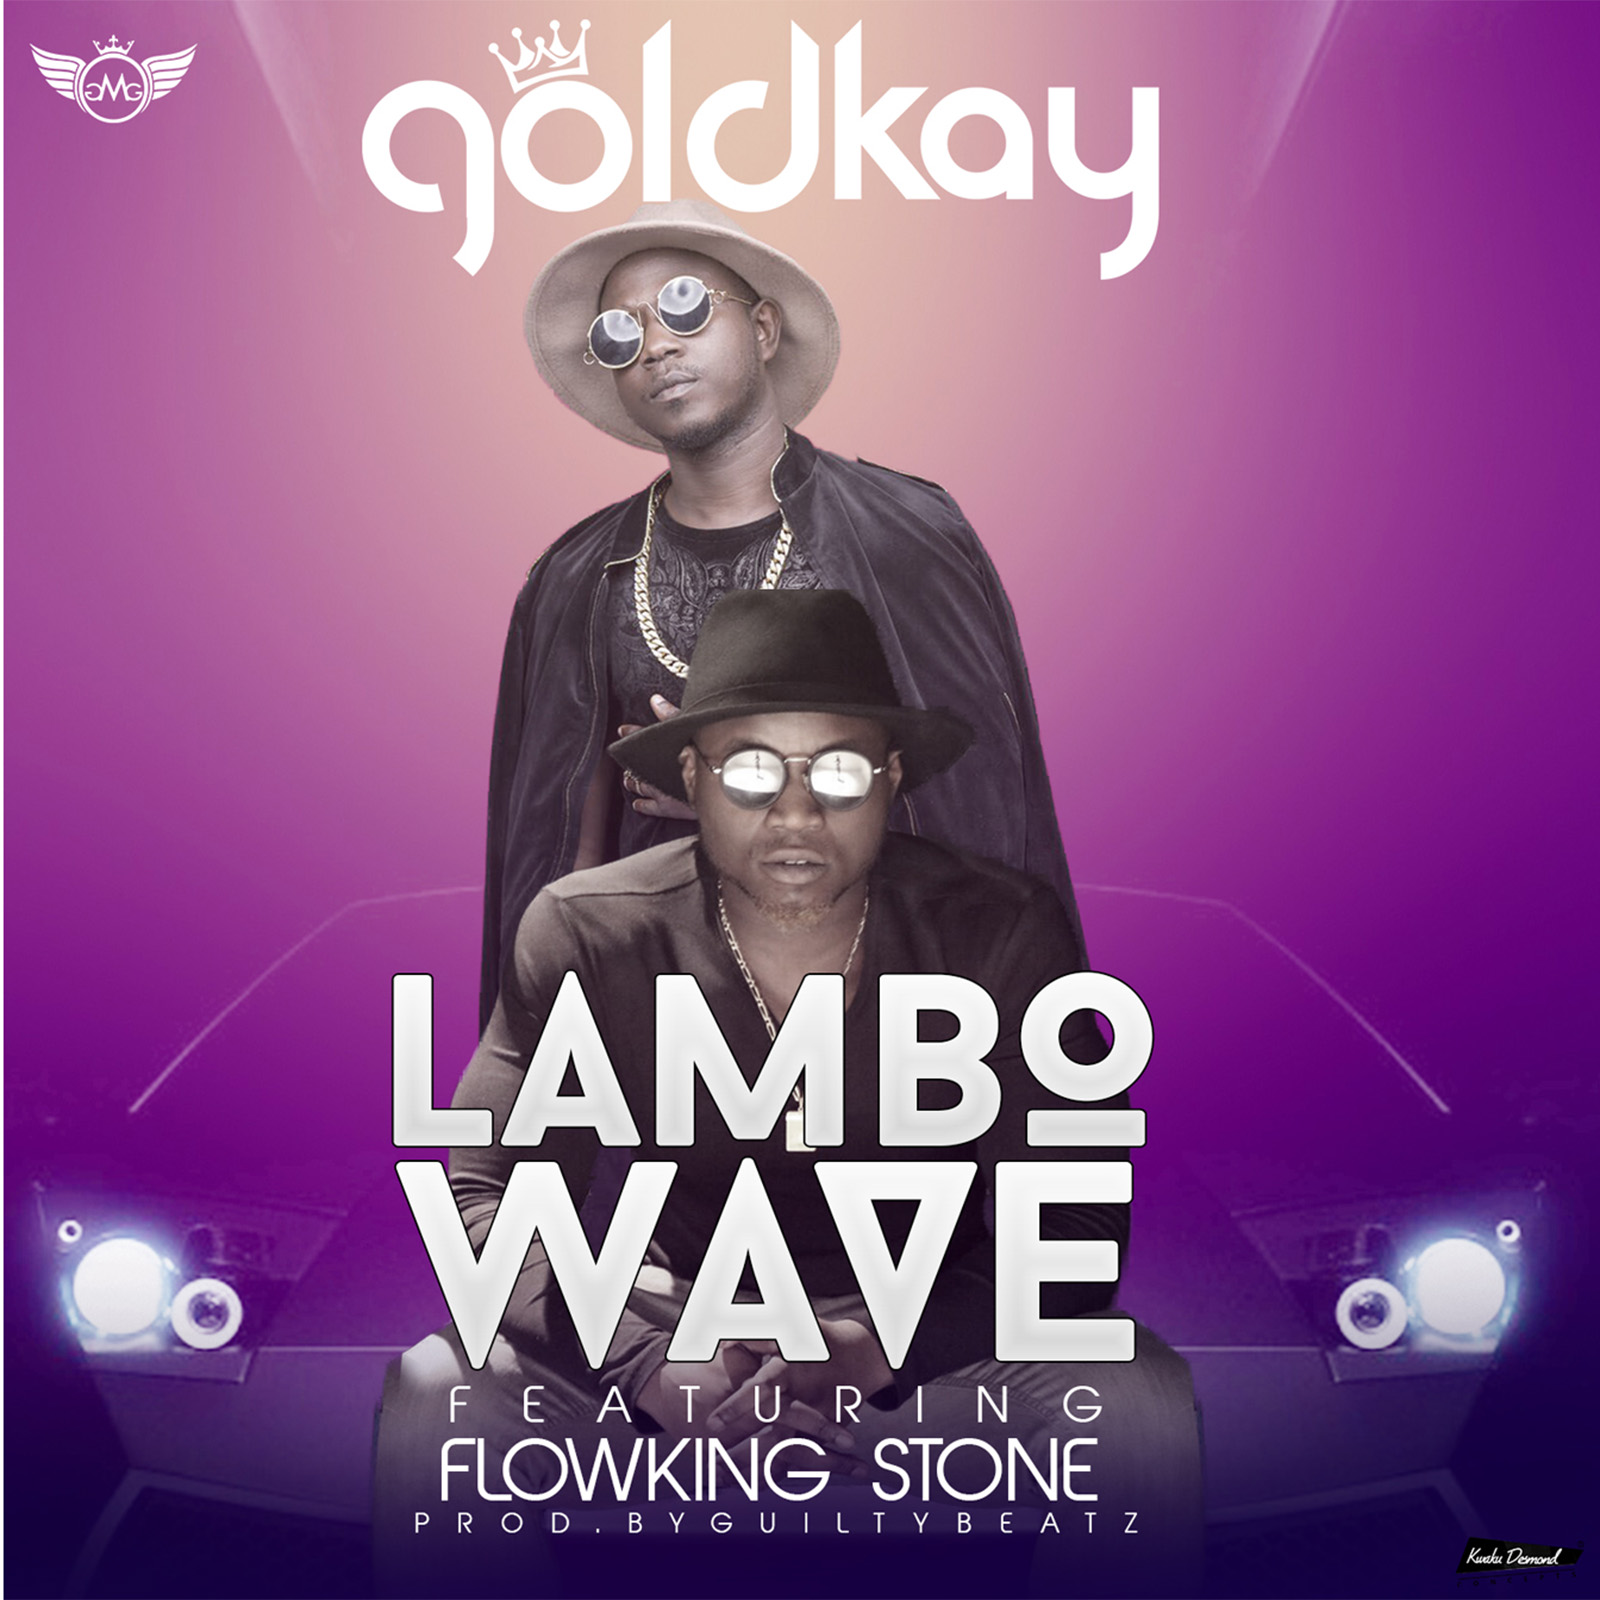 Lambo Wave by GoldKay feat. Flowking Stone